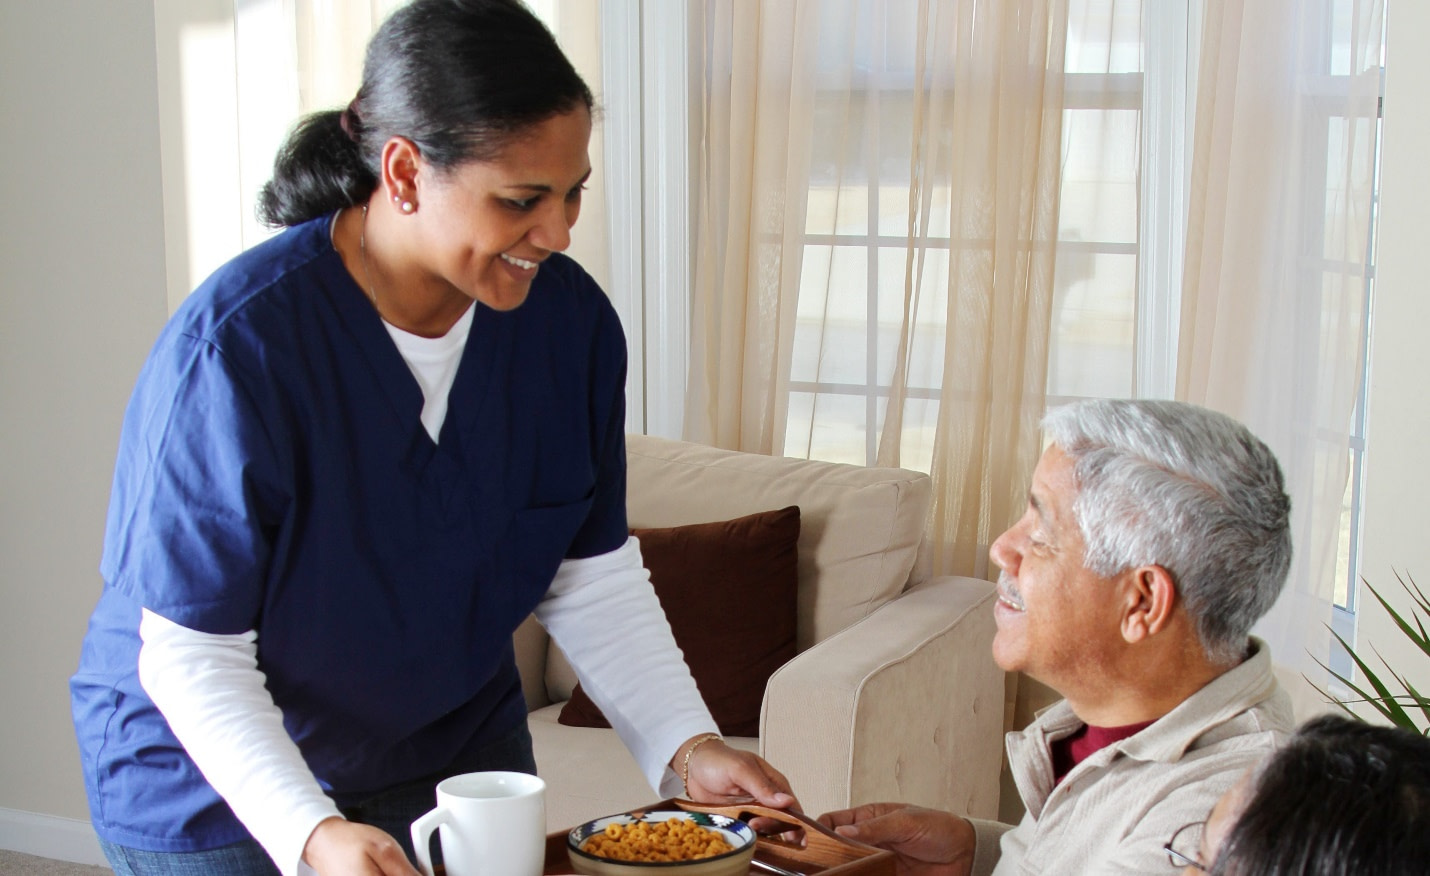 assisted living and Hospice caregivers can be some of the best in the business